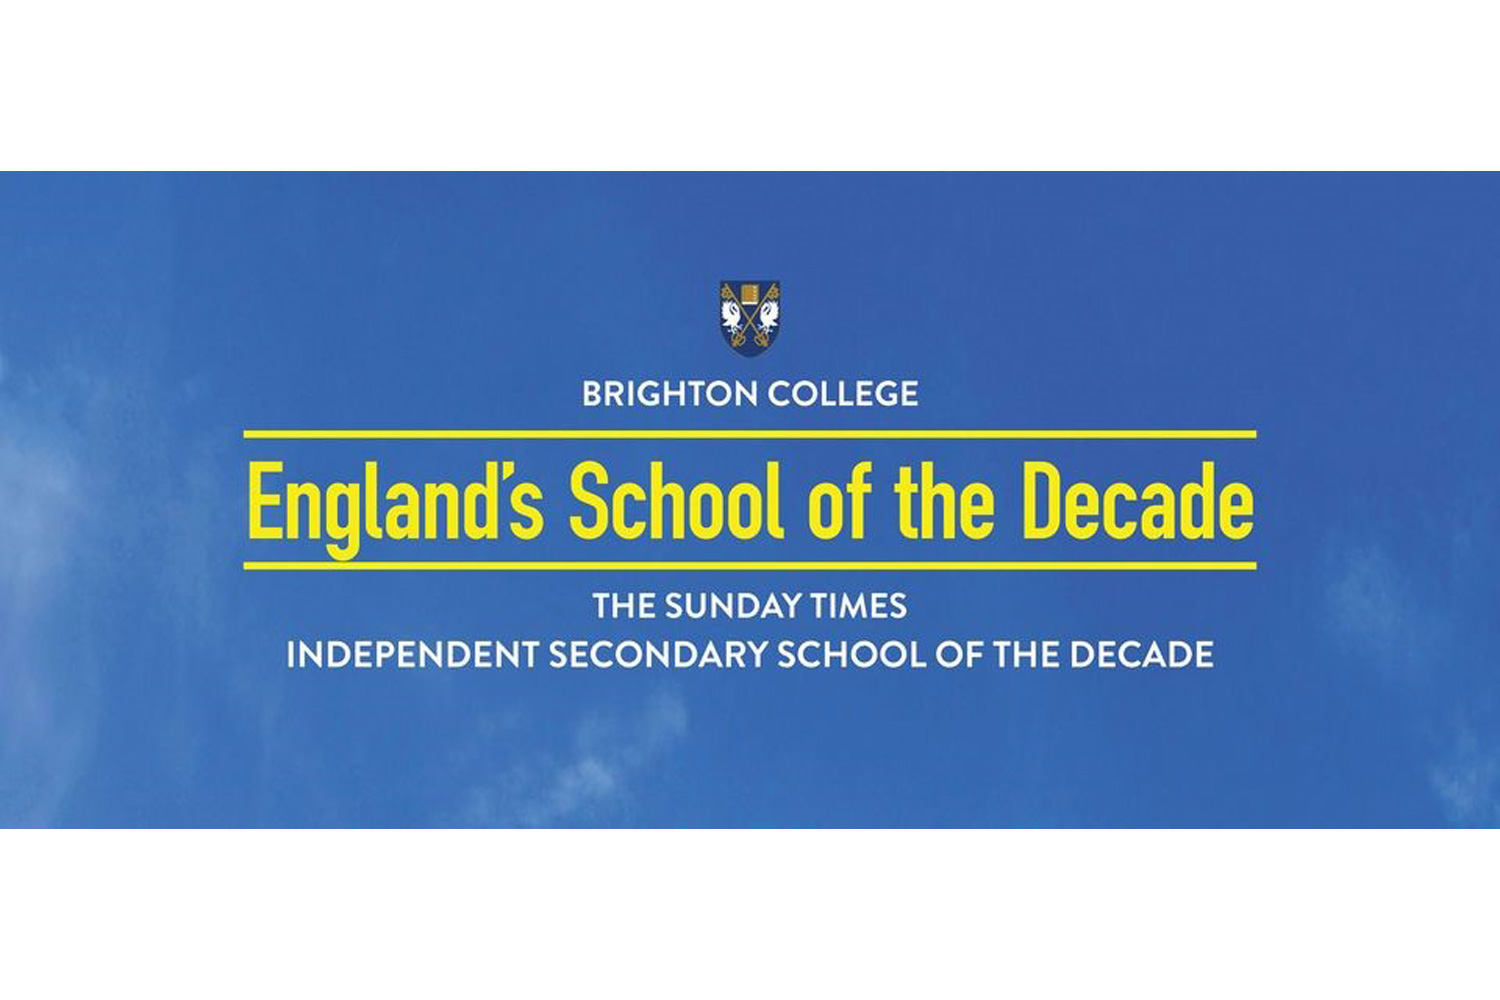 BRIGHTON COLLEGE UK WINS THE SUNDAY TIMES ENGLAND'S INDEPENDENT SCHOOL OF THE DECADE AWARD